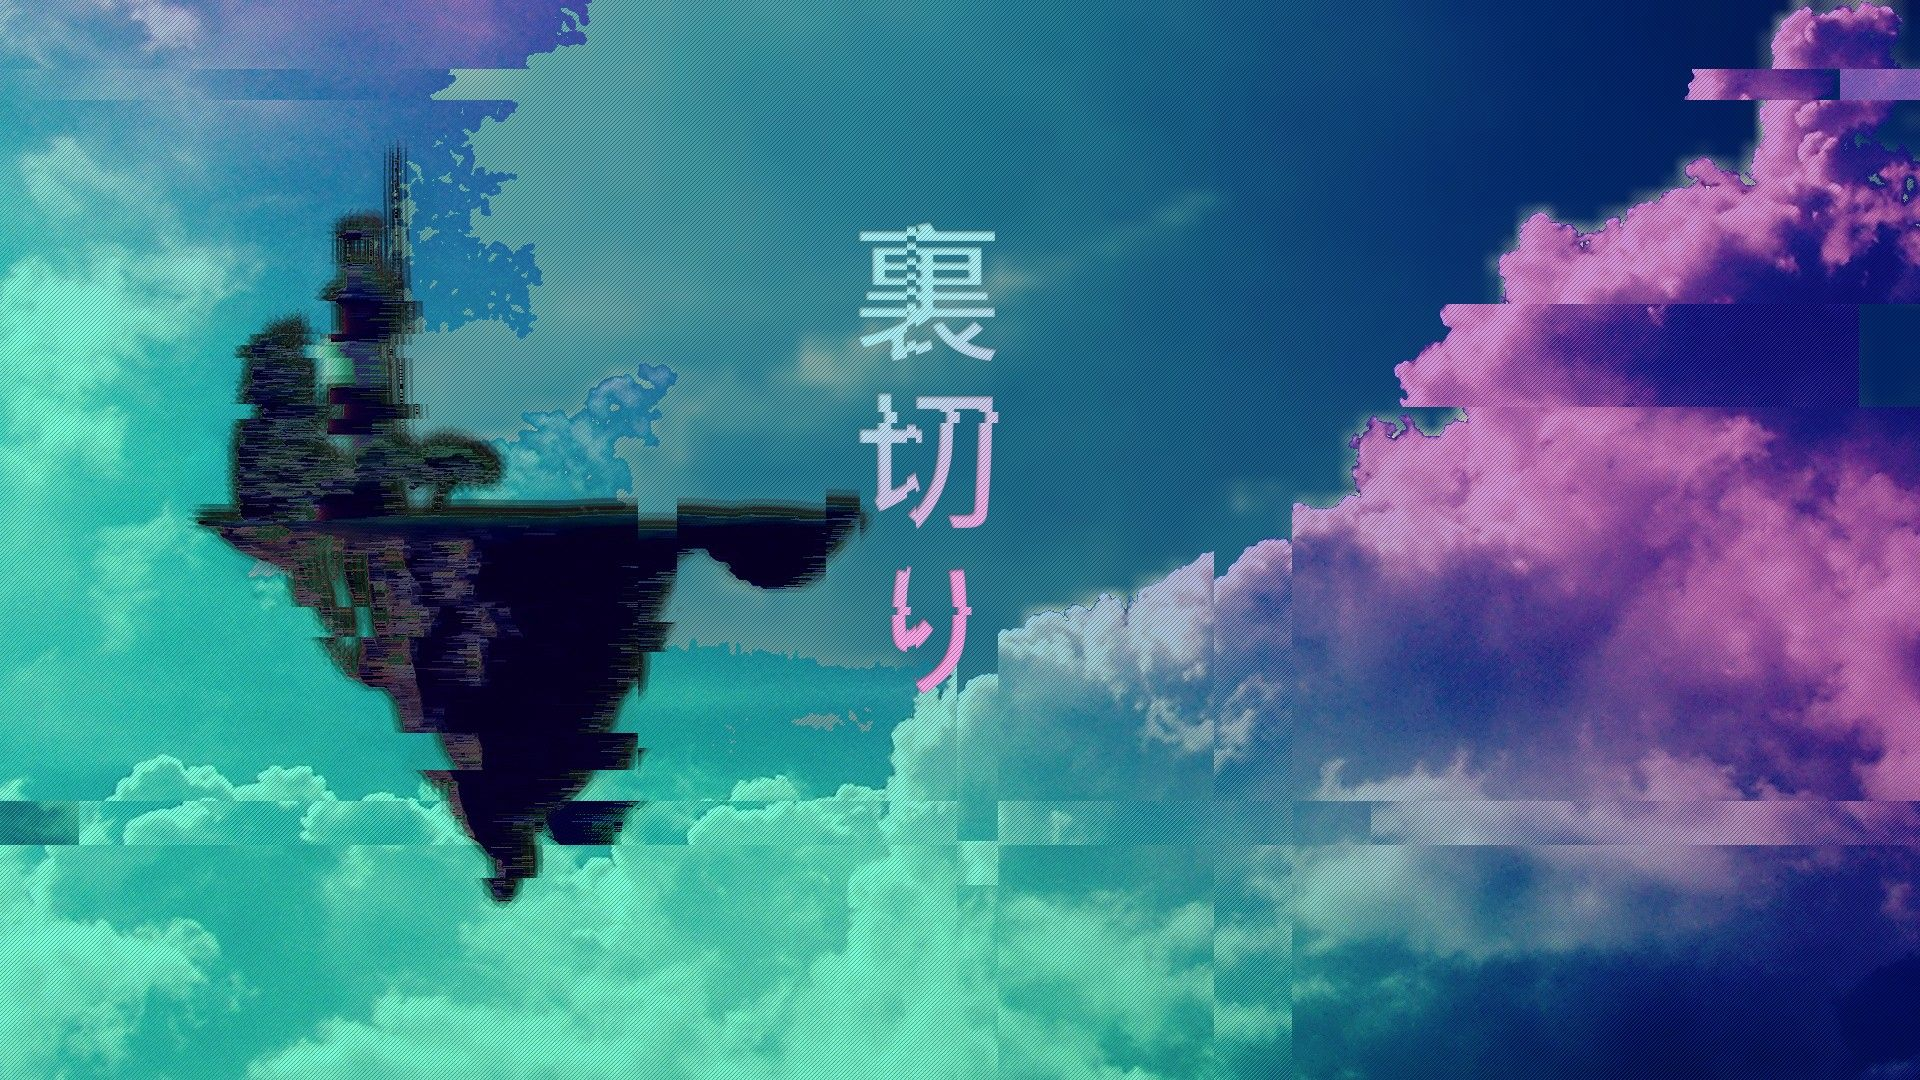 Bildergebnis Fur Vaporwave Wallpaper Vaporwave Wallpaper Glitch Art Gorillaz